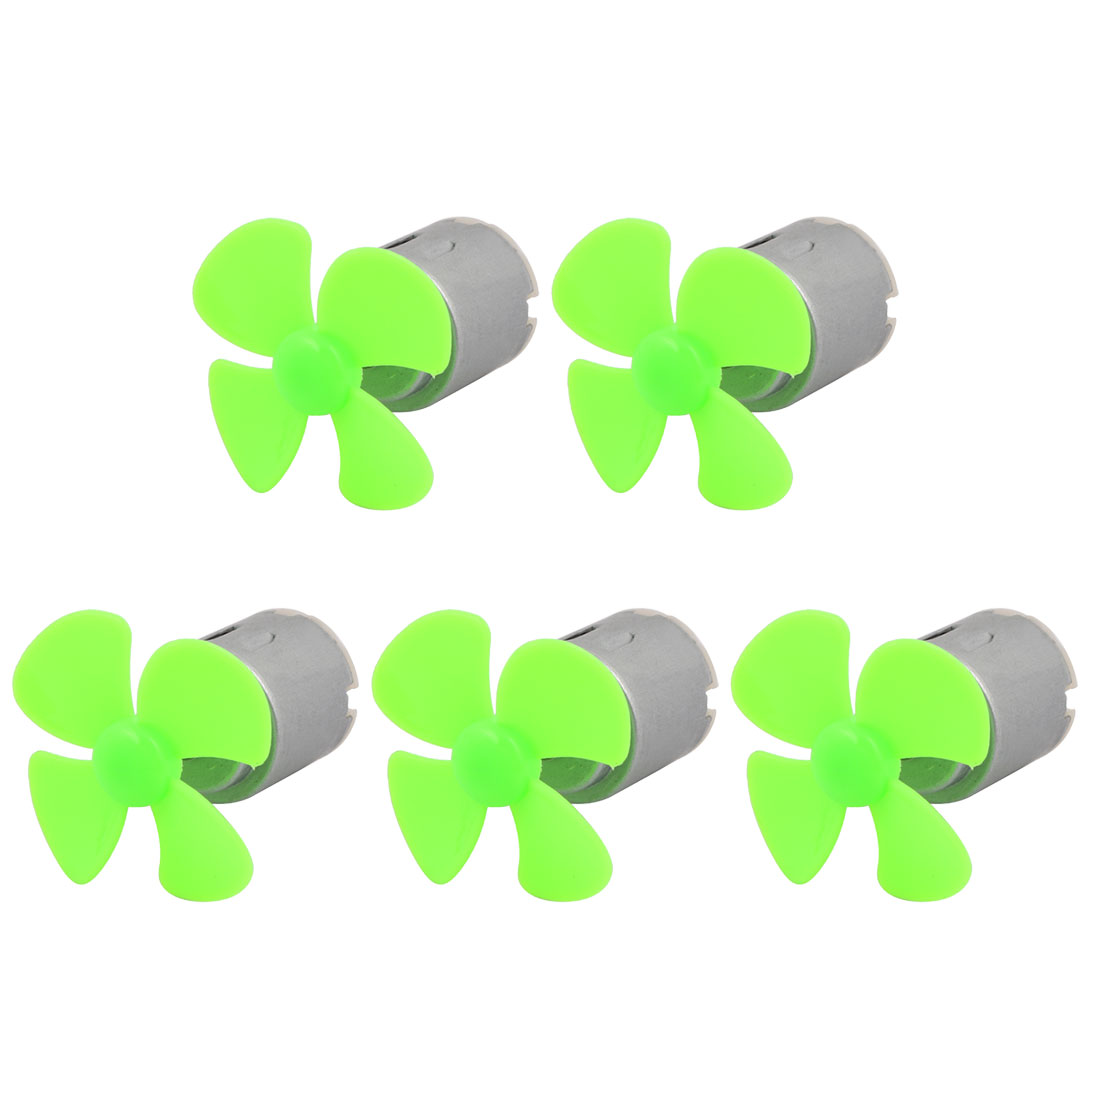 5pcs DC 3V 0.13A 11000RPM Strong Force Motor 4 Blades 40mm Green Propeller for RC Aircraft